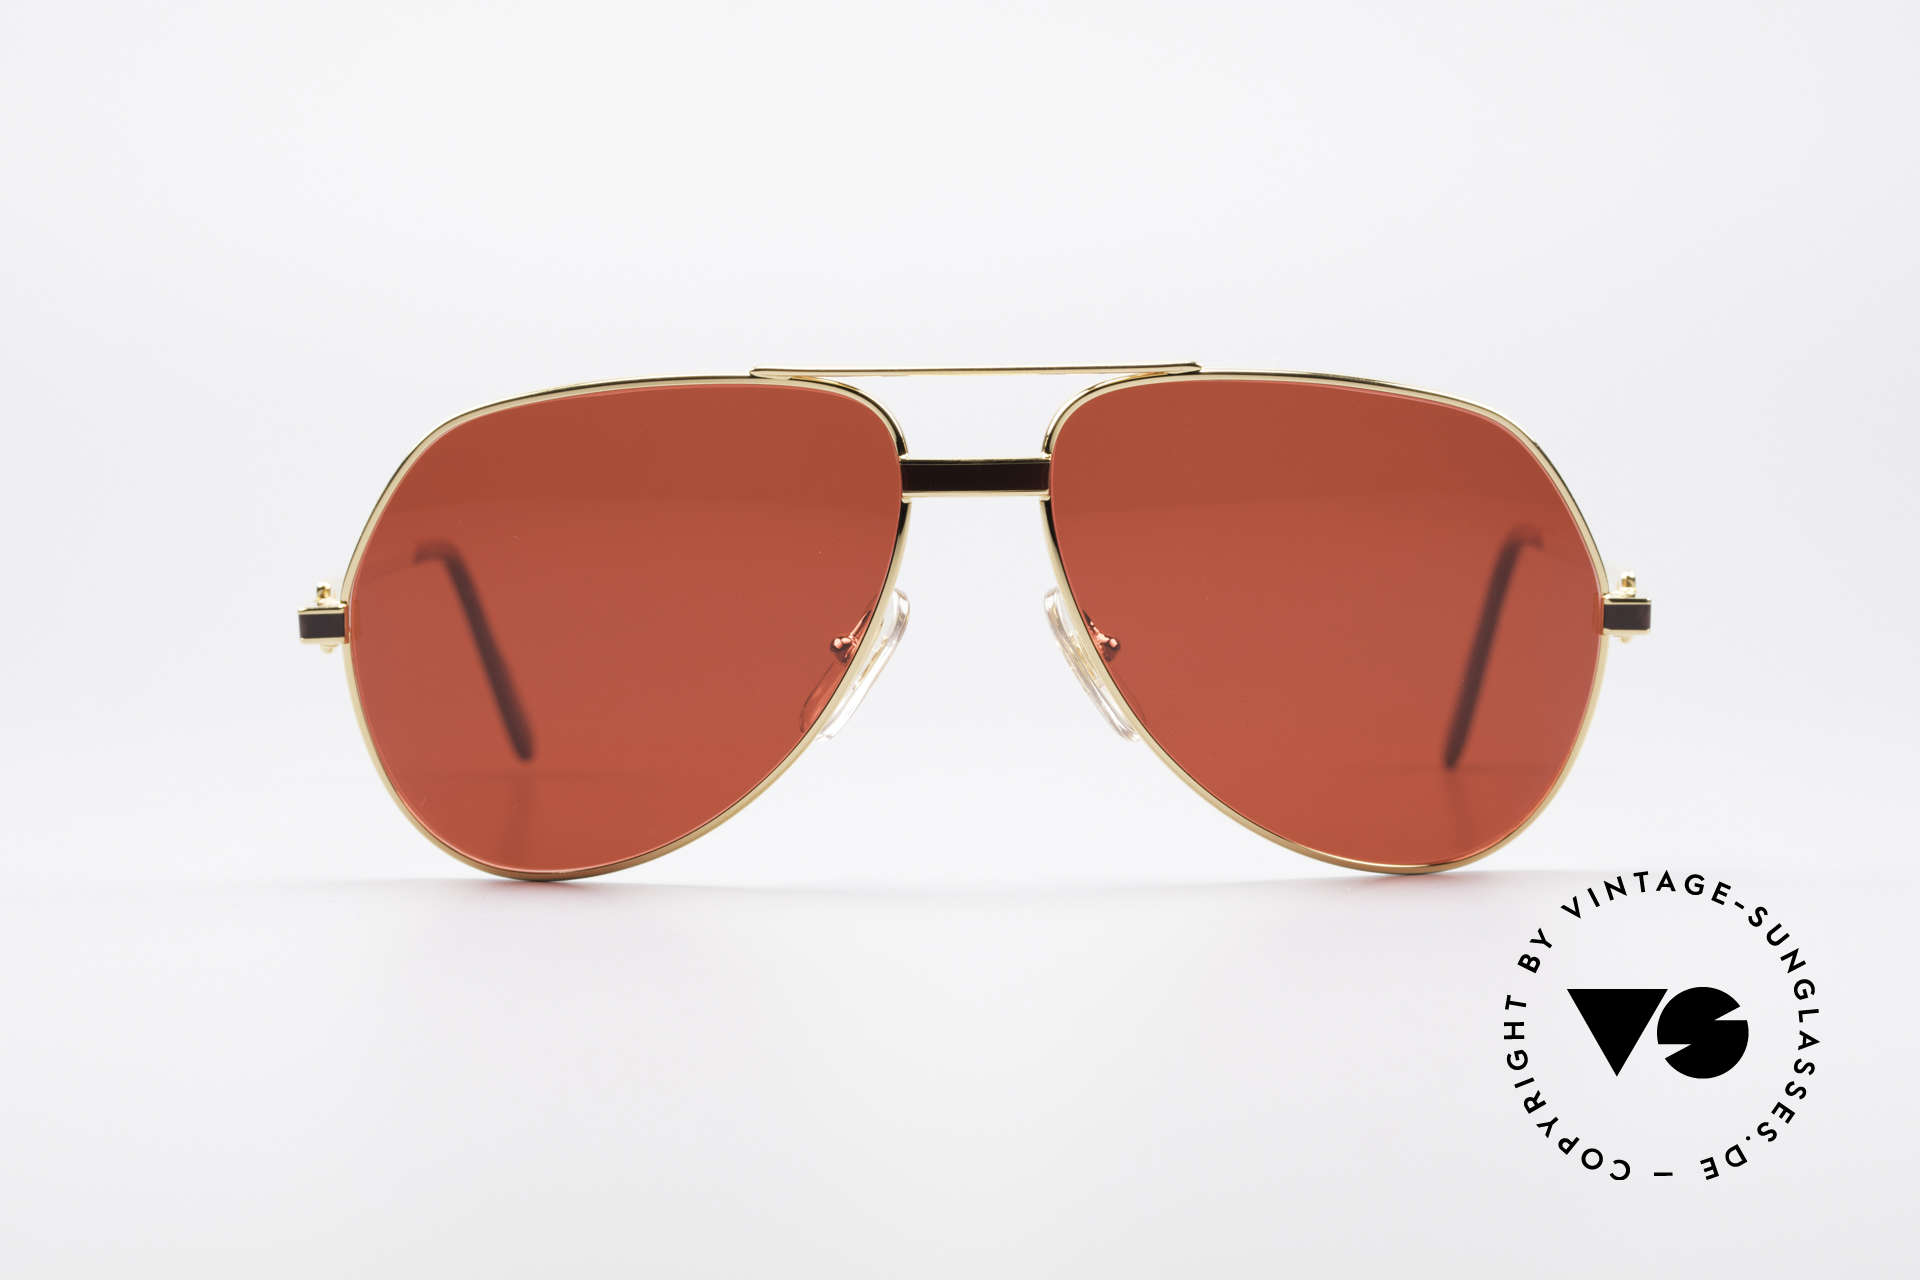 20c8e43a4d8 Sunglasses Cartier Vendome Laque - M Luxury Aviator Shades 80 S ...